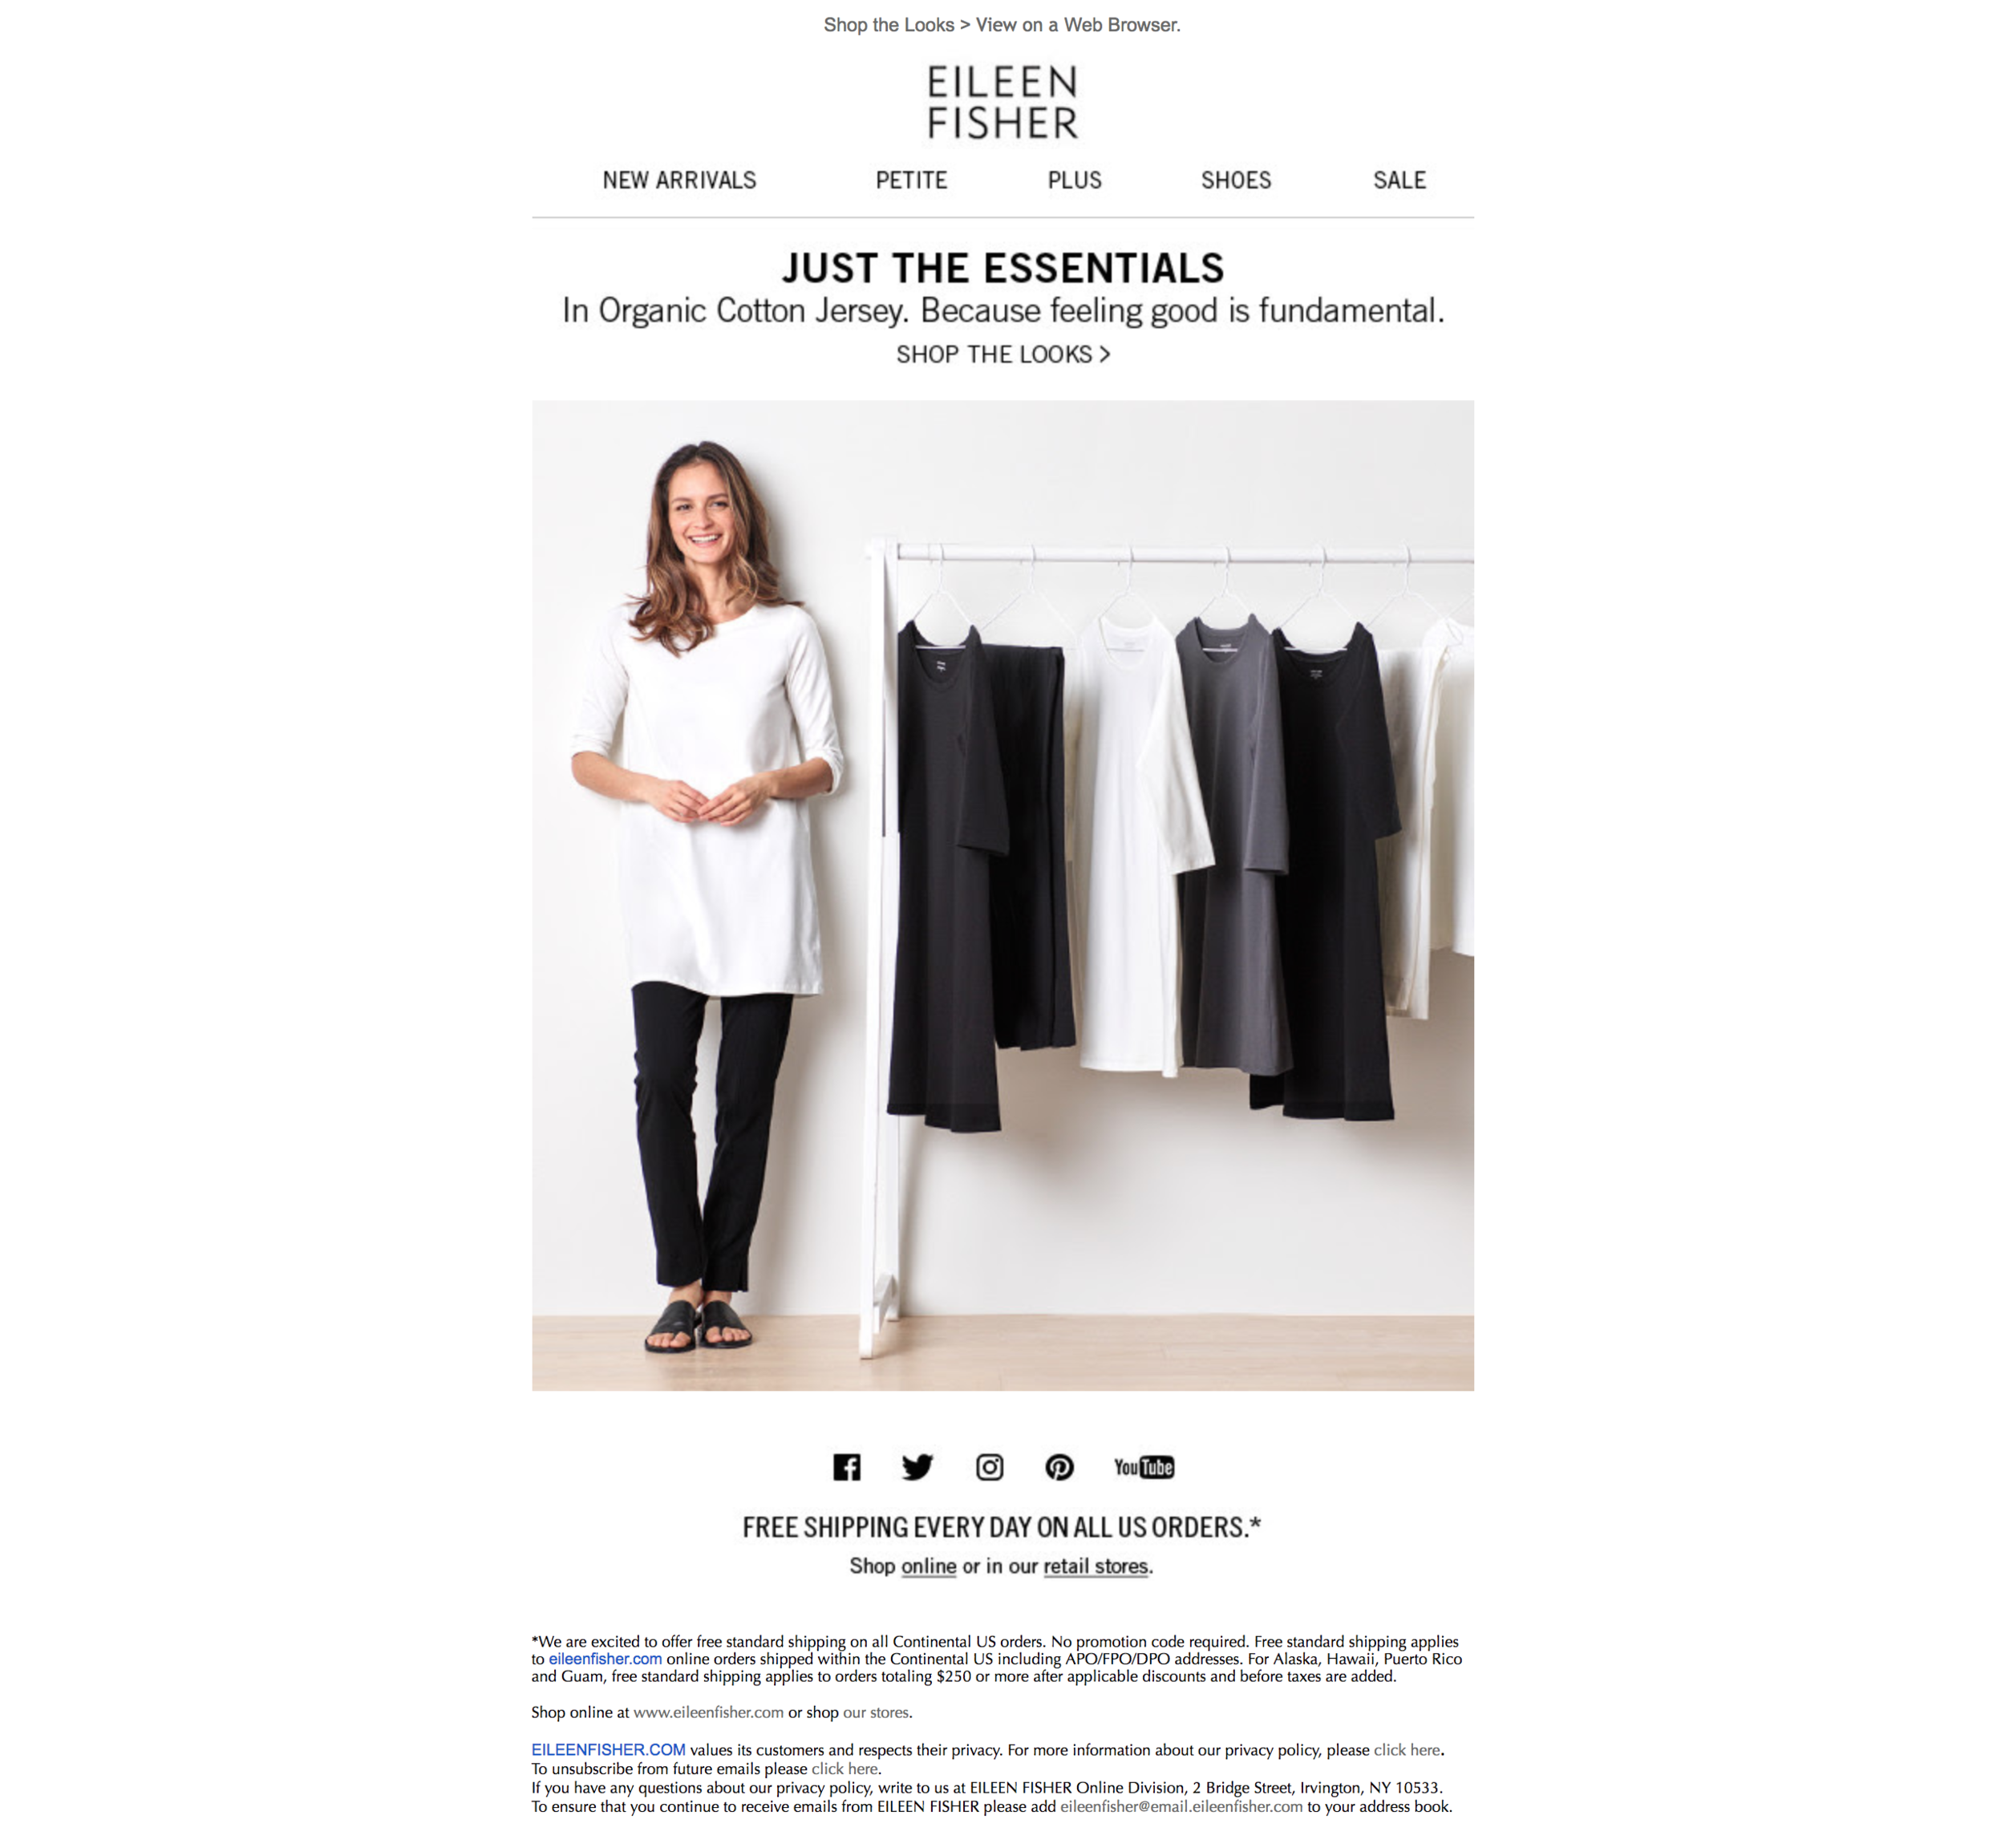 eileen-fisher-cotton-shop.png